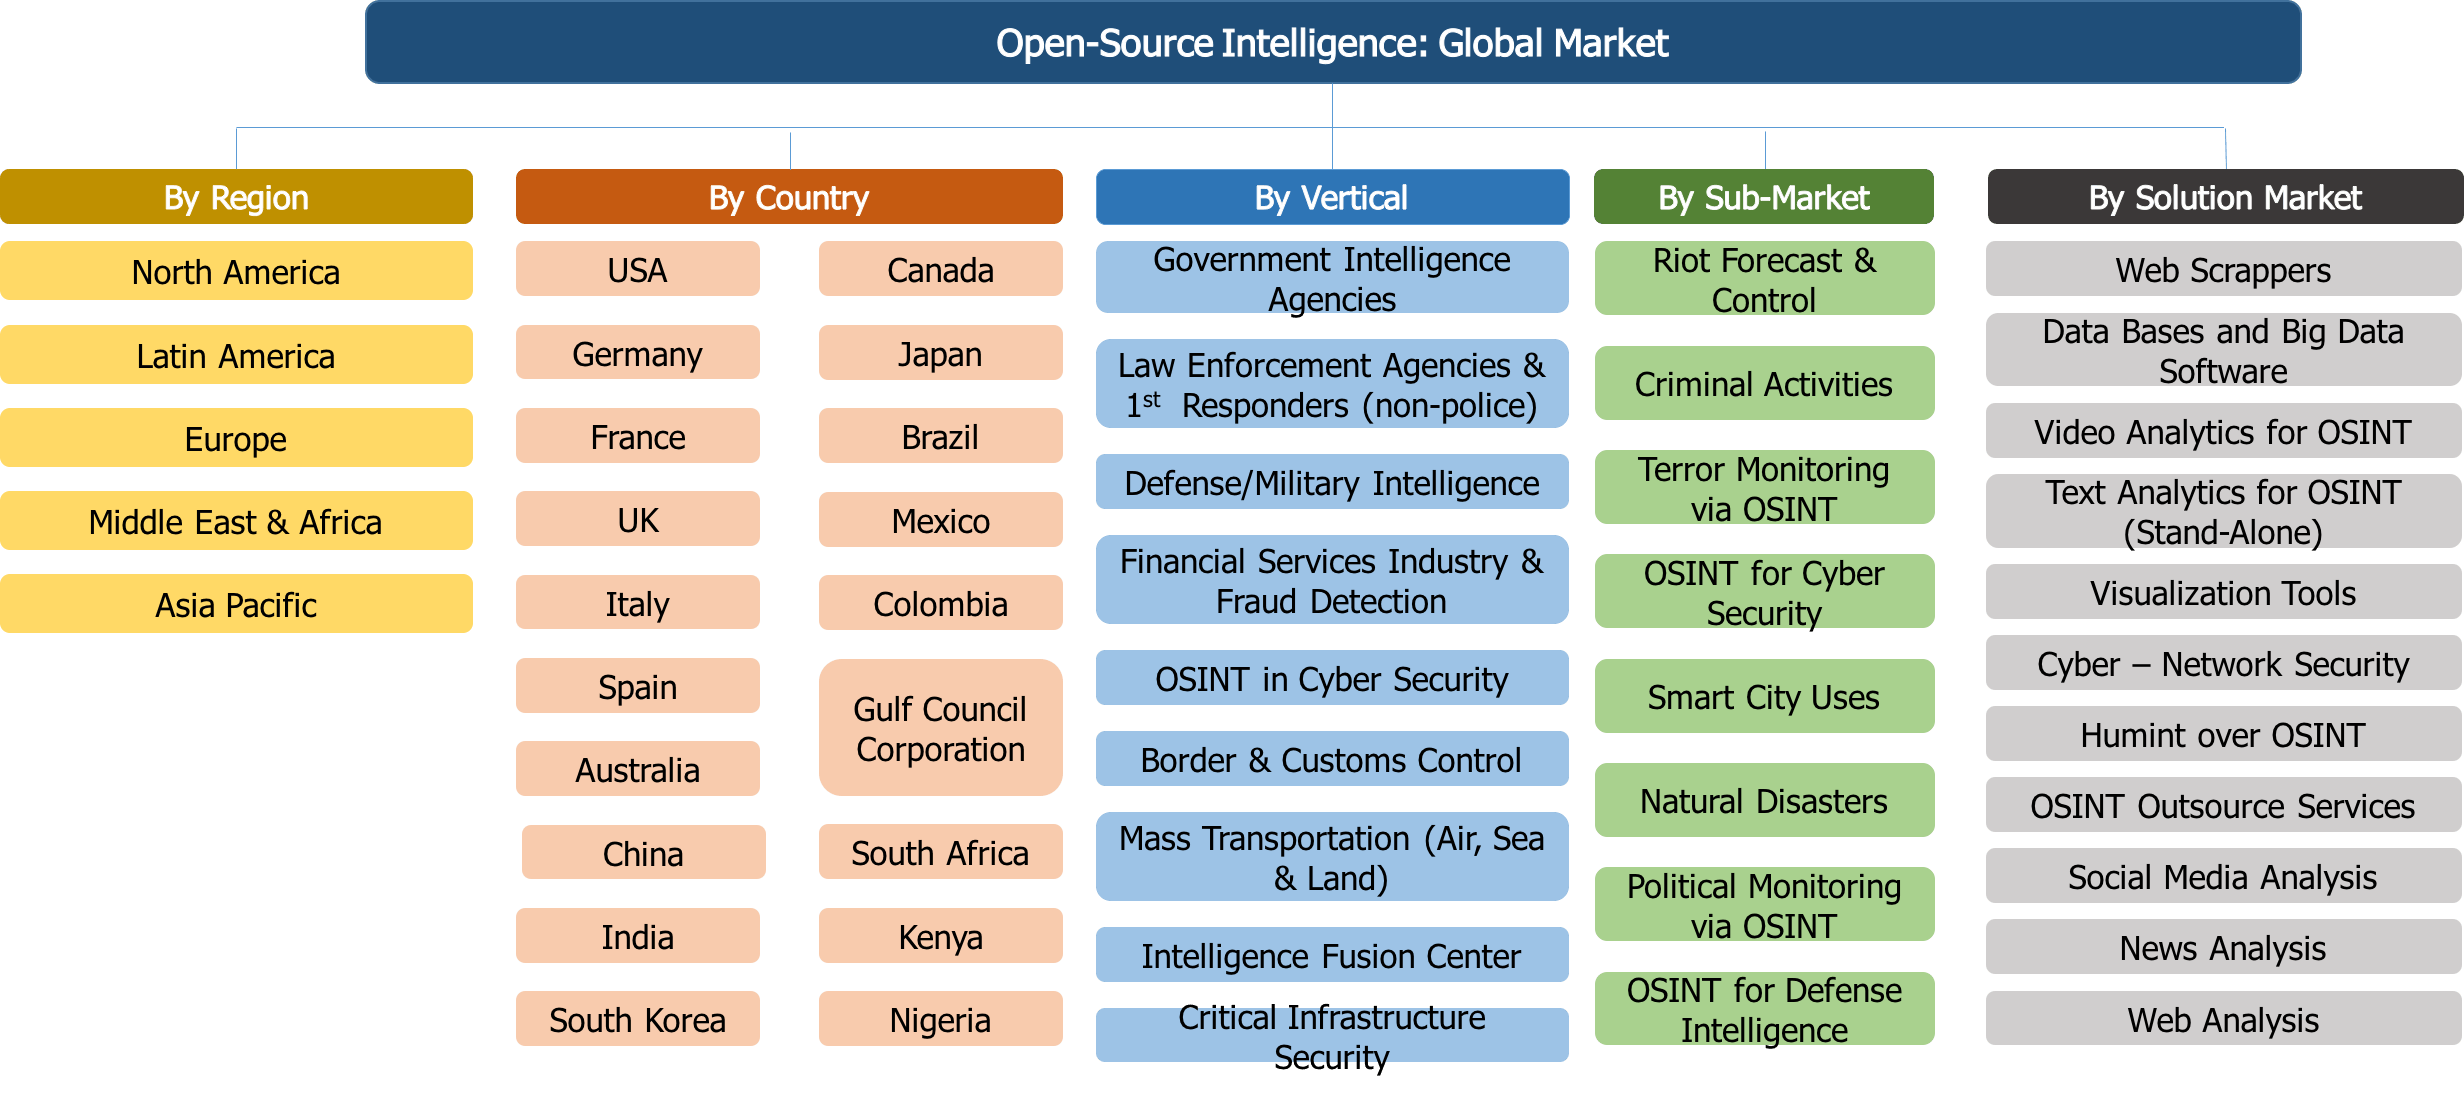 Open-Source Intelligence Market - 2017-2022